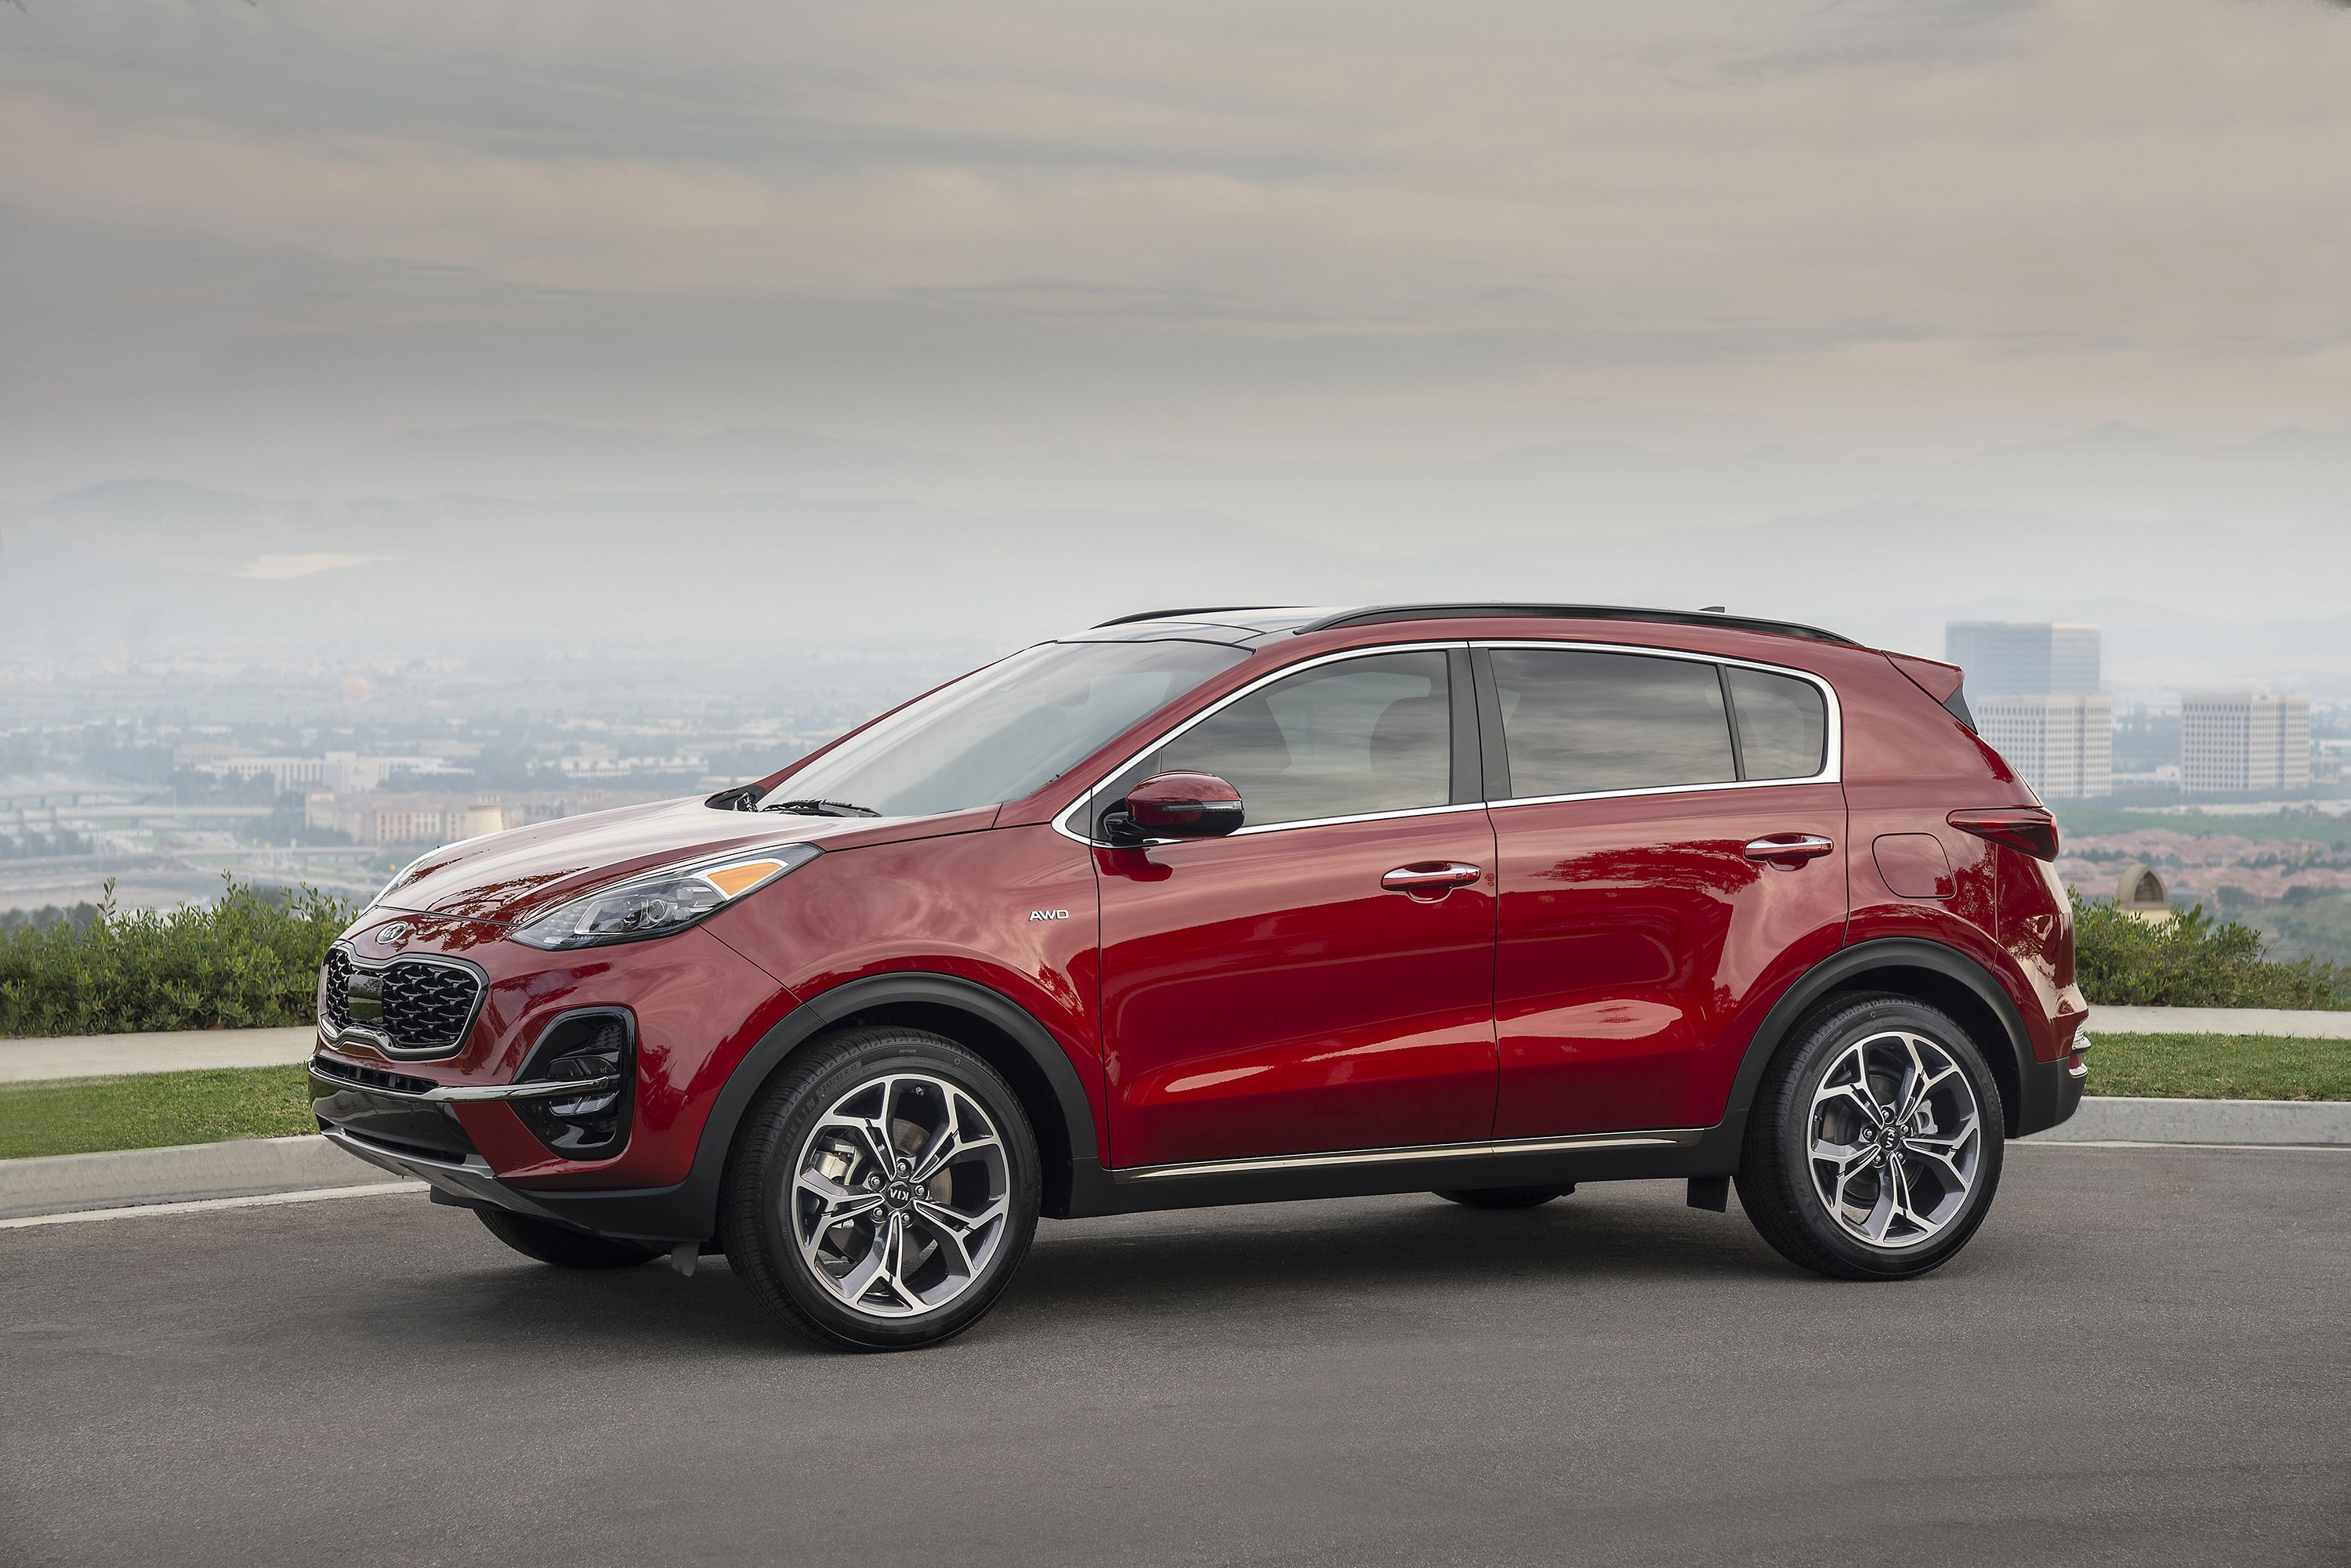 Ranking The Best New Compact SUVs On The Market In 2021   HotCars